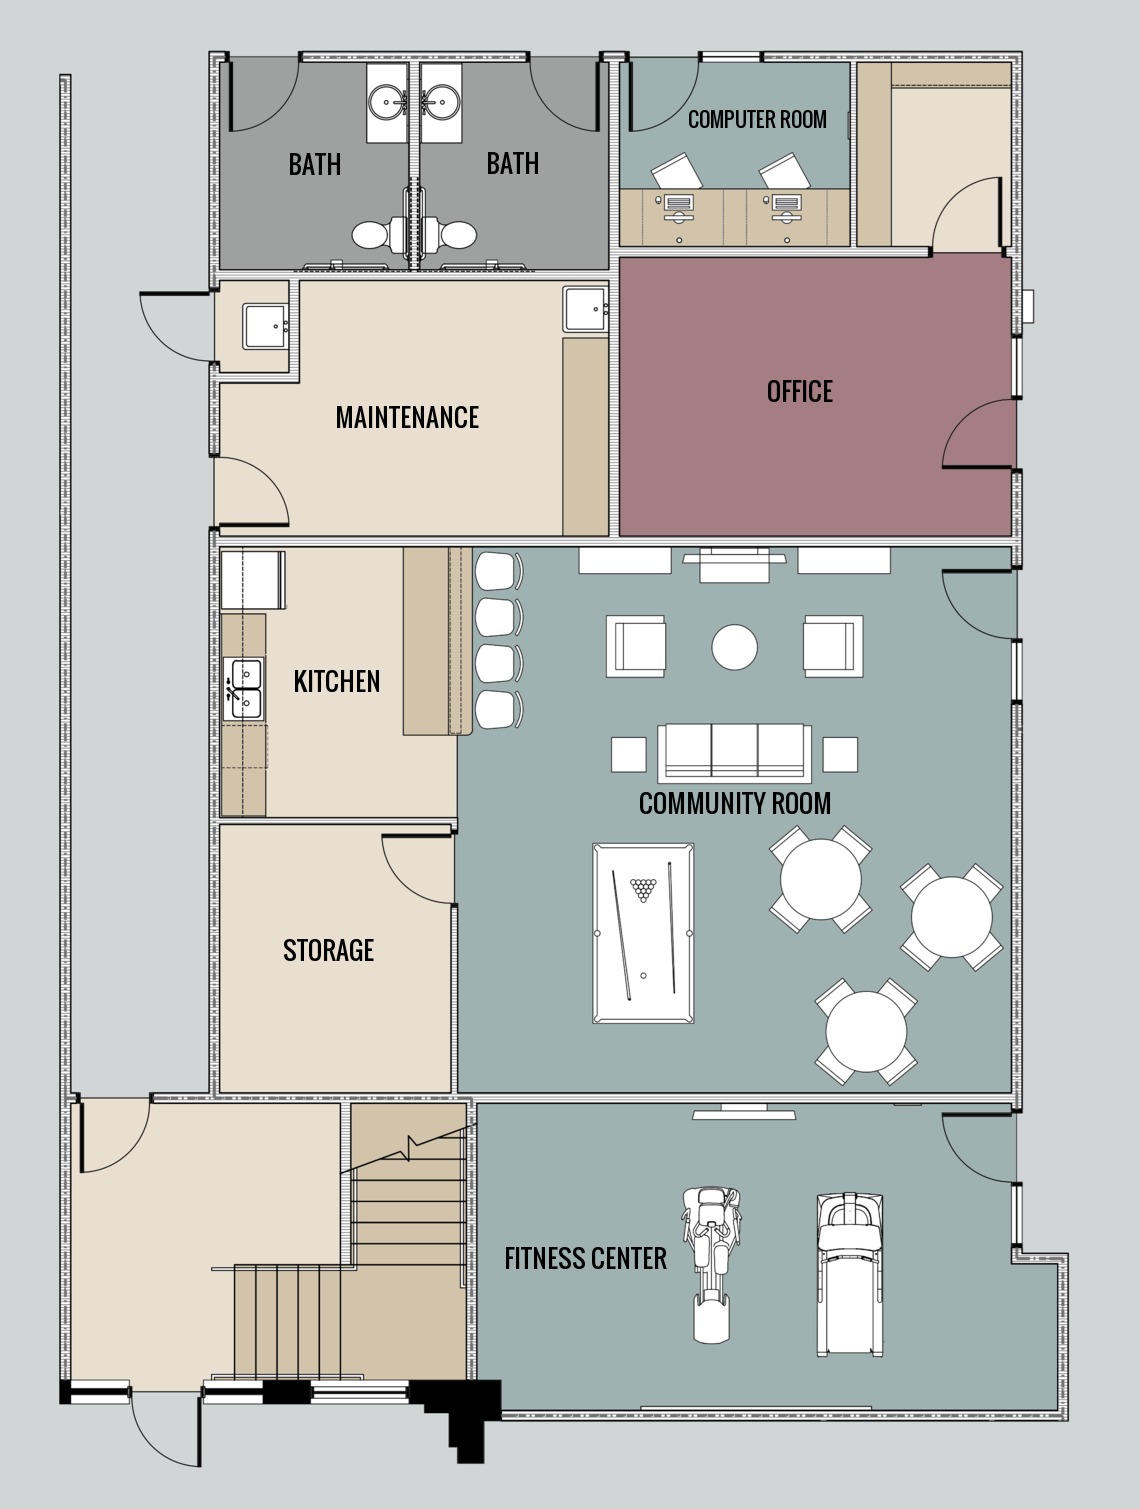 Community Room Floor Plan 10